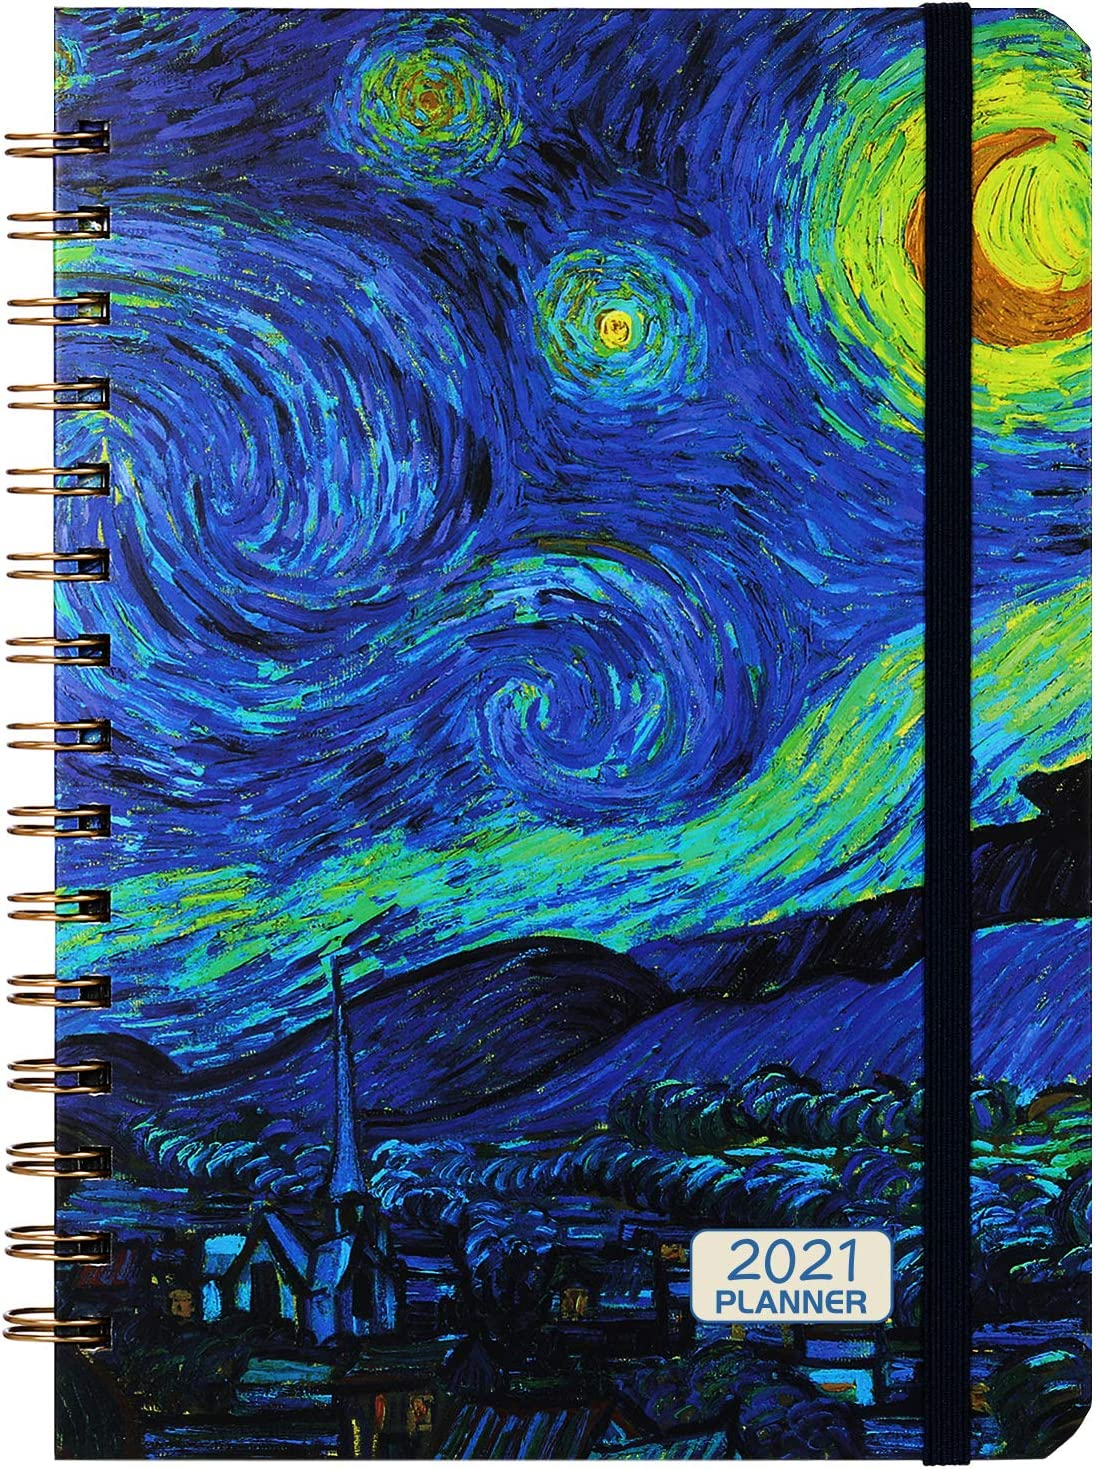 Elastic Closure Diary 2021 with Flexible Hardcover Inner Pocket 2021 Diary A5 Week to View 12 Monthly Tabs Strong Twin- Wire Binding